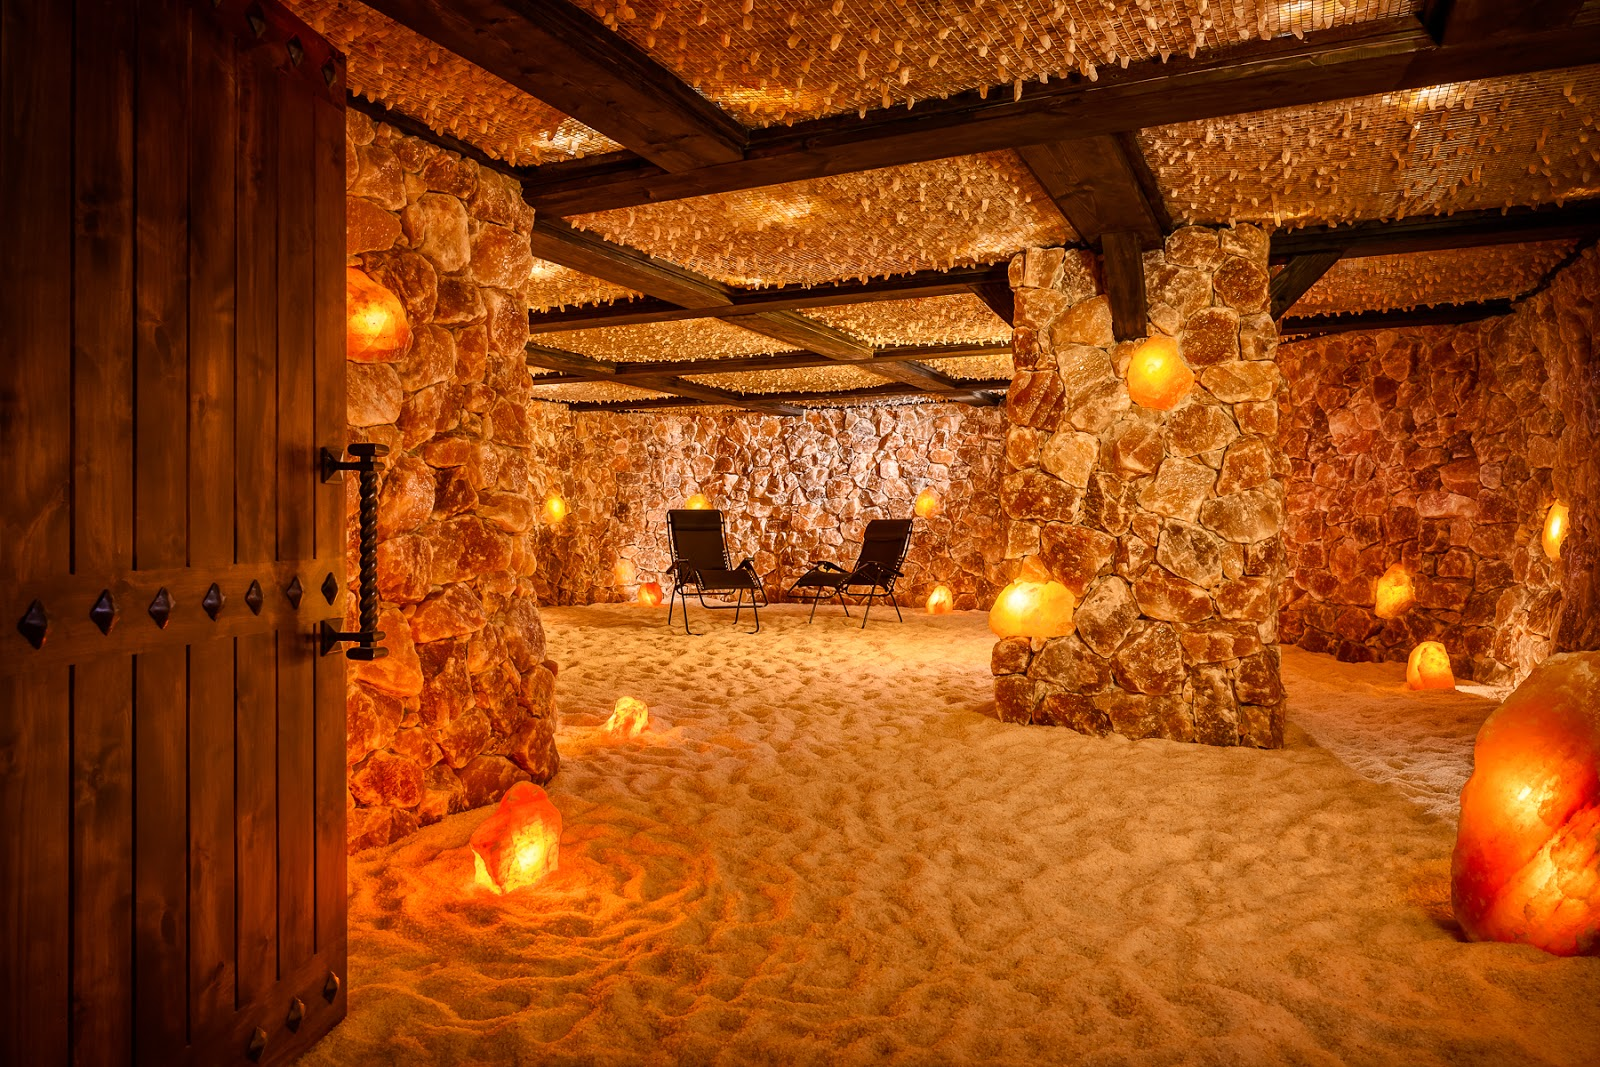 Salt Lamp Sizes For Rooms : Bijoux Events: Santa Barbara Salt Cave Bridal Party Pamper Event!